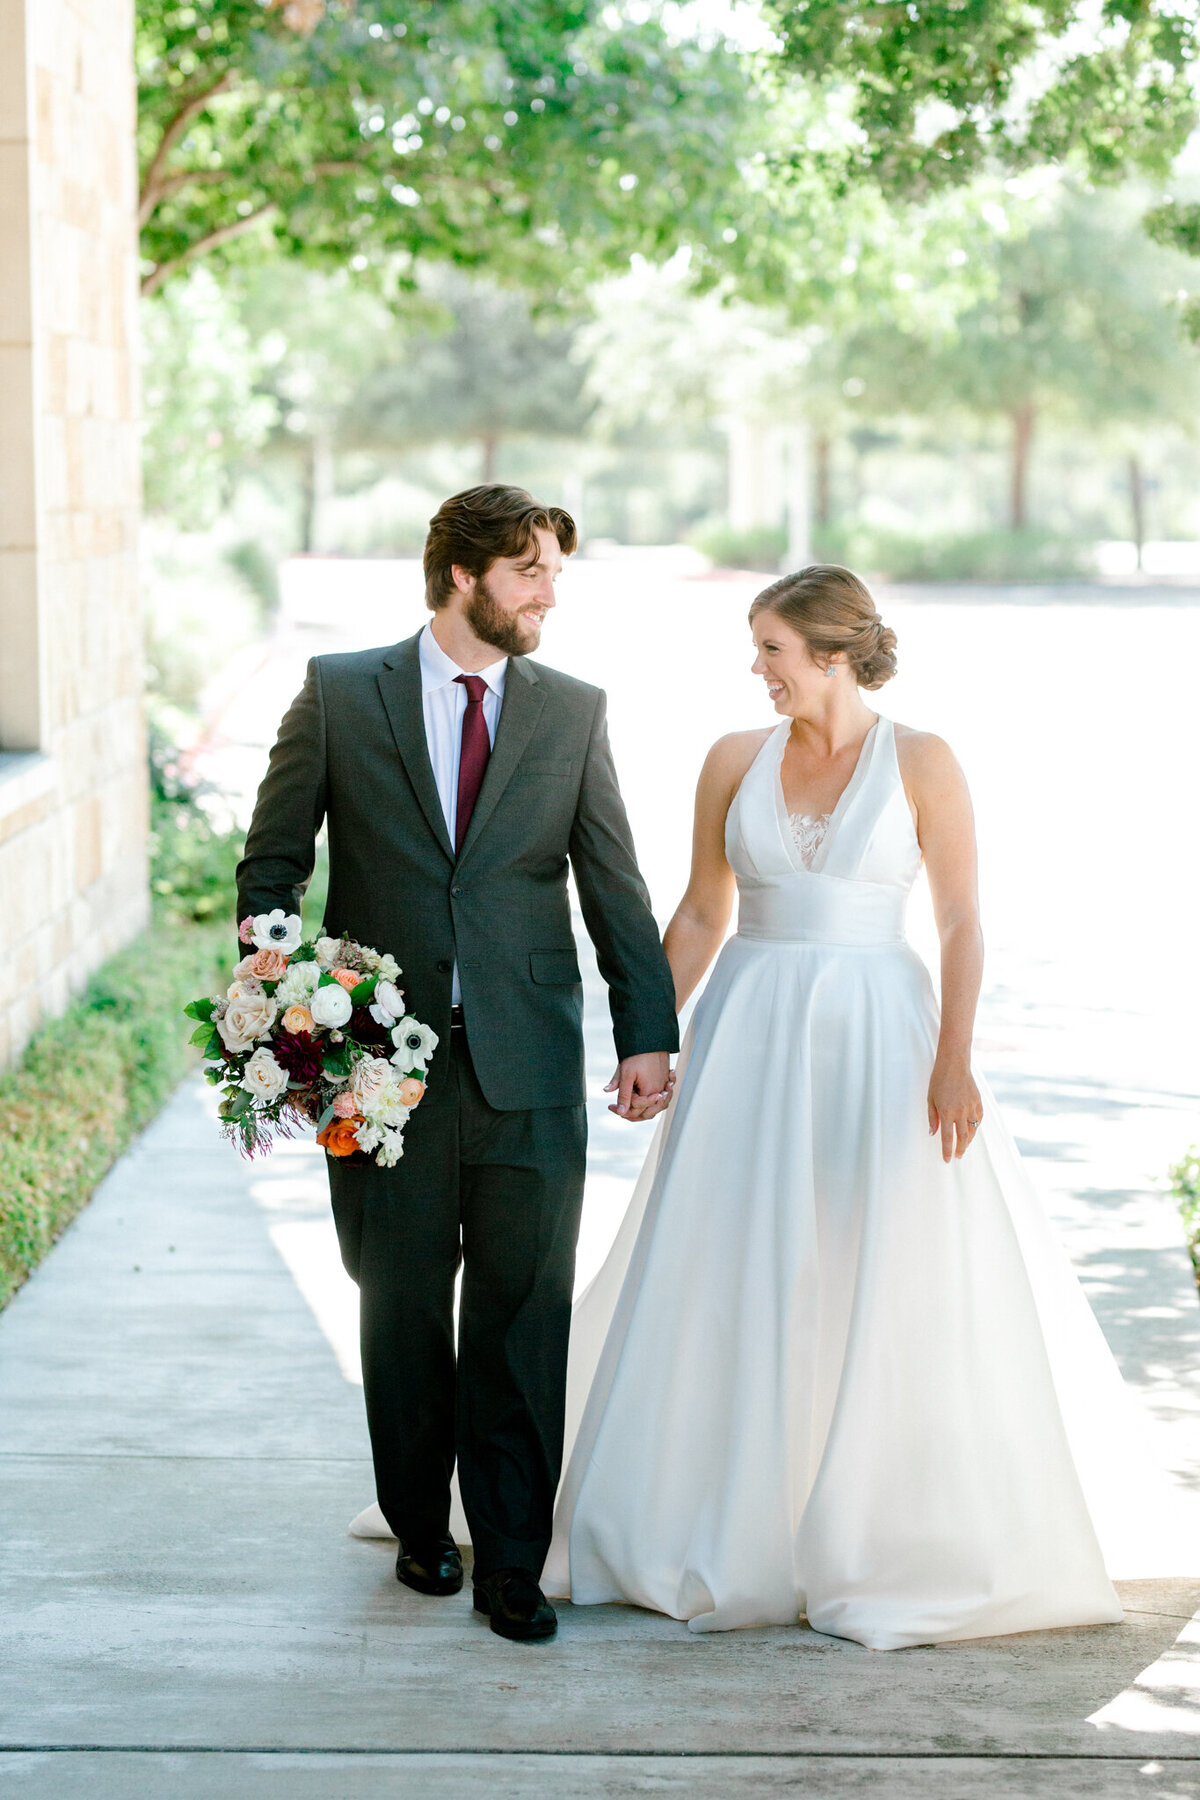 Kaylee & Michael's Wedding at Watermark Community Church | Dallas Wedding Photographer | Sami Kathryn Photography-48